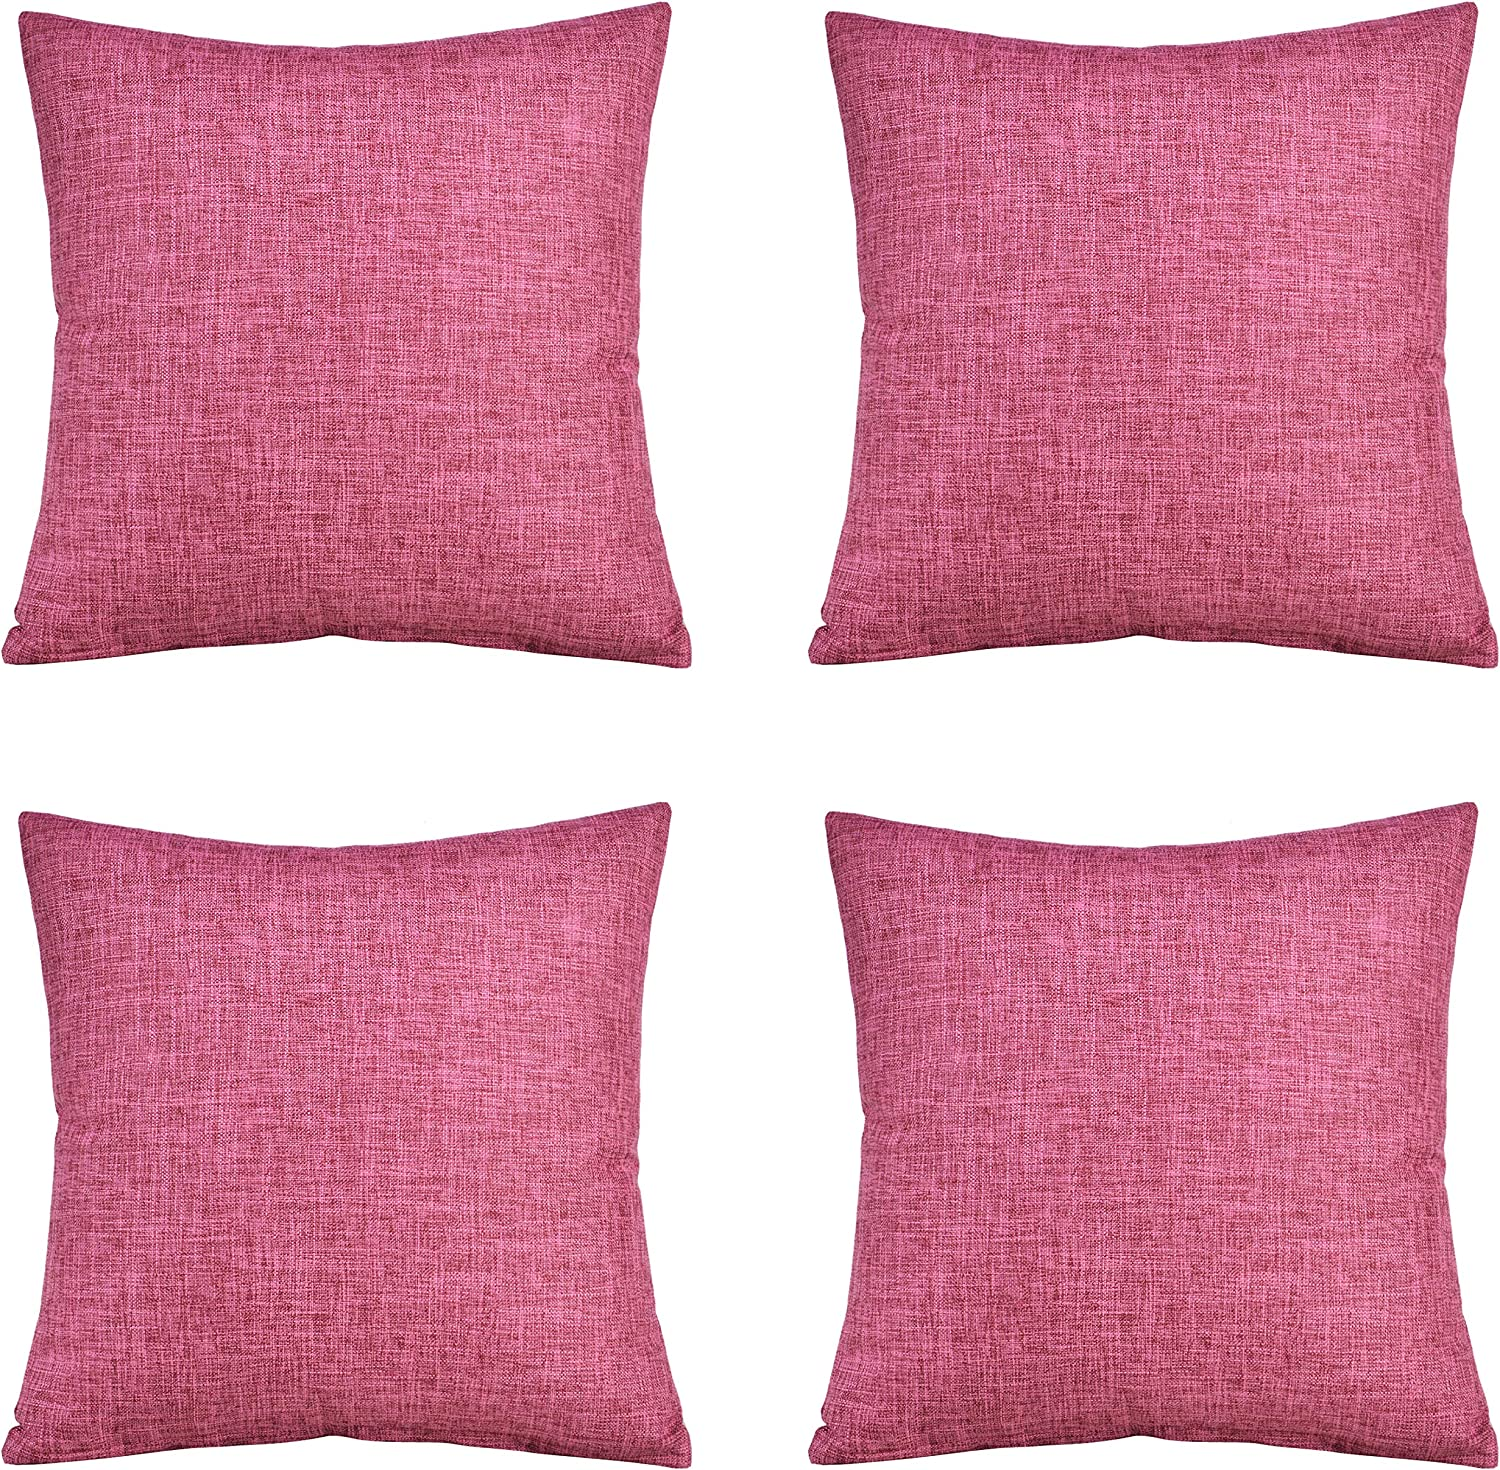 00A-Purple Tennove 4 Pack Pillow Covers Cotton Linen/Throw Pillow Case Decorative Pillow Cover Square Cushion Cover for Sofa,Bed 18X18